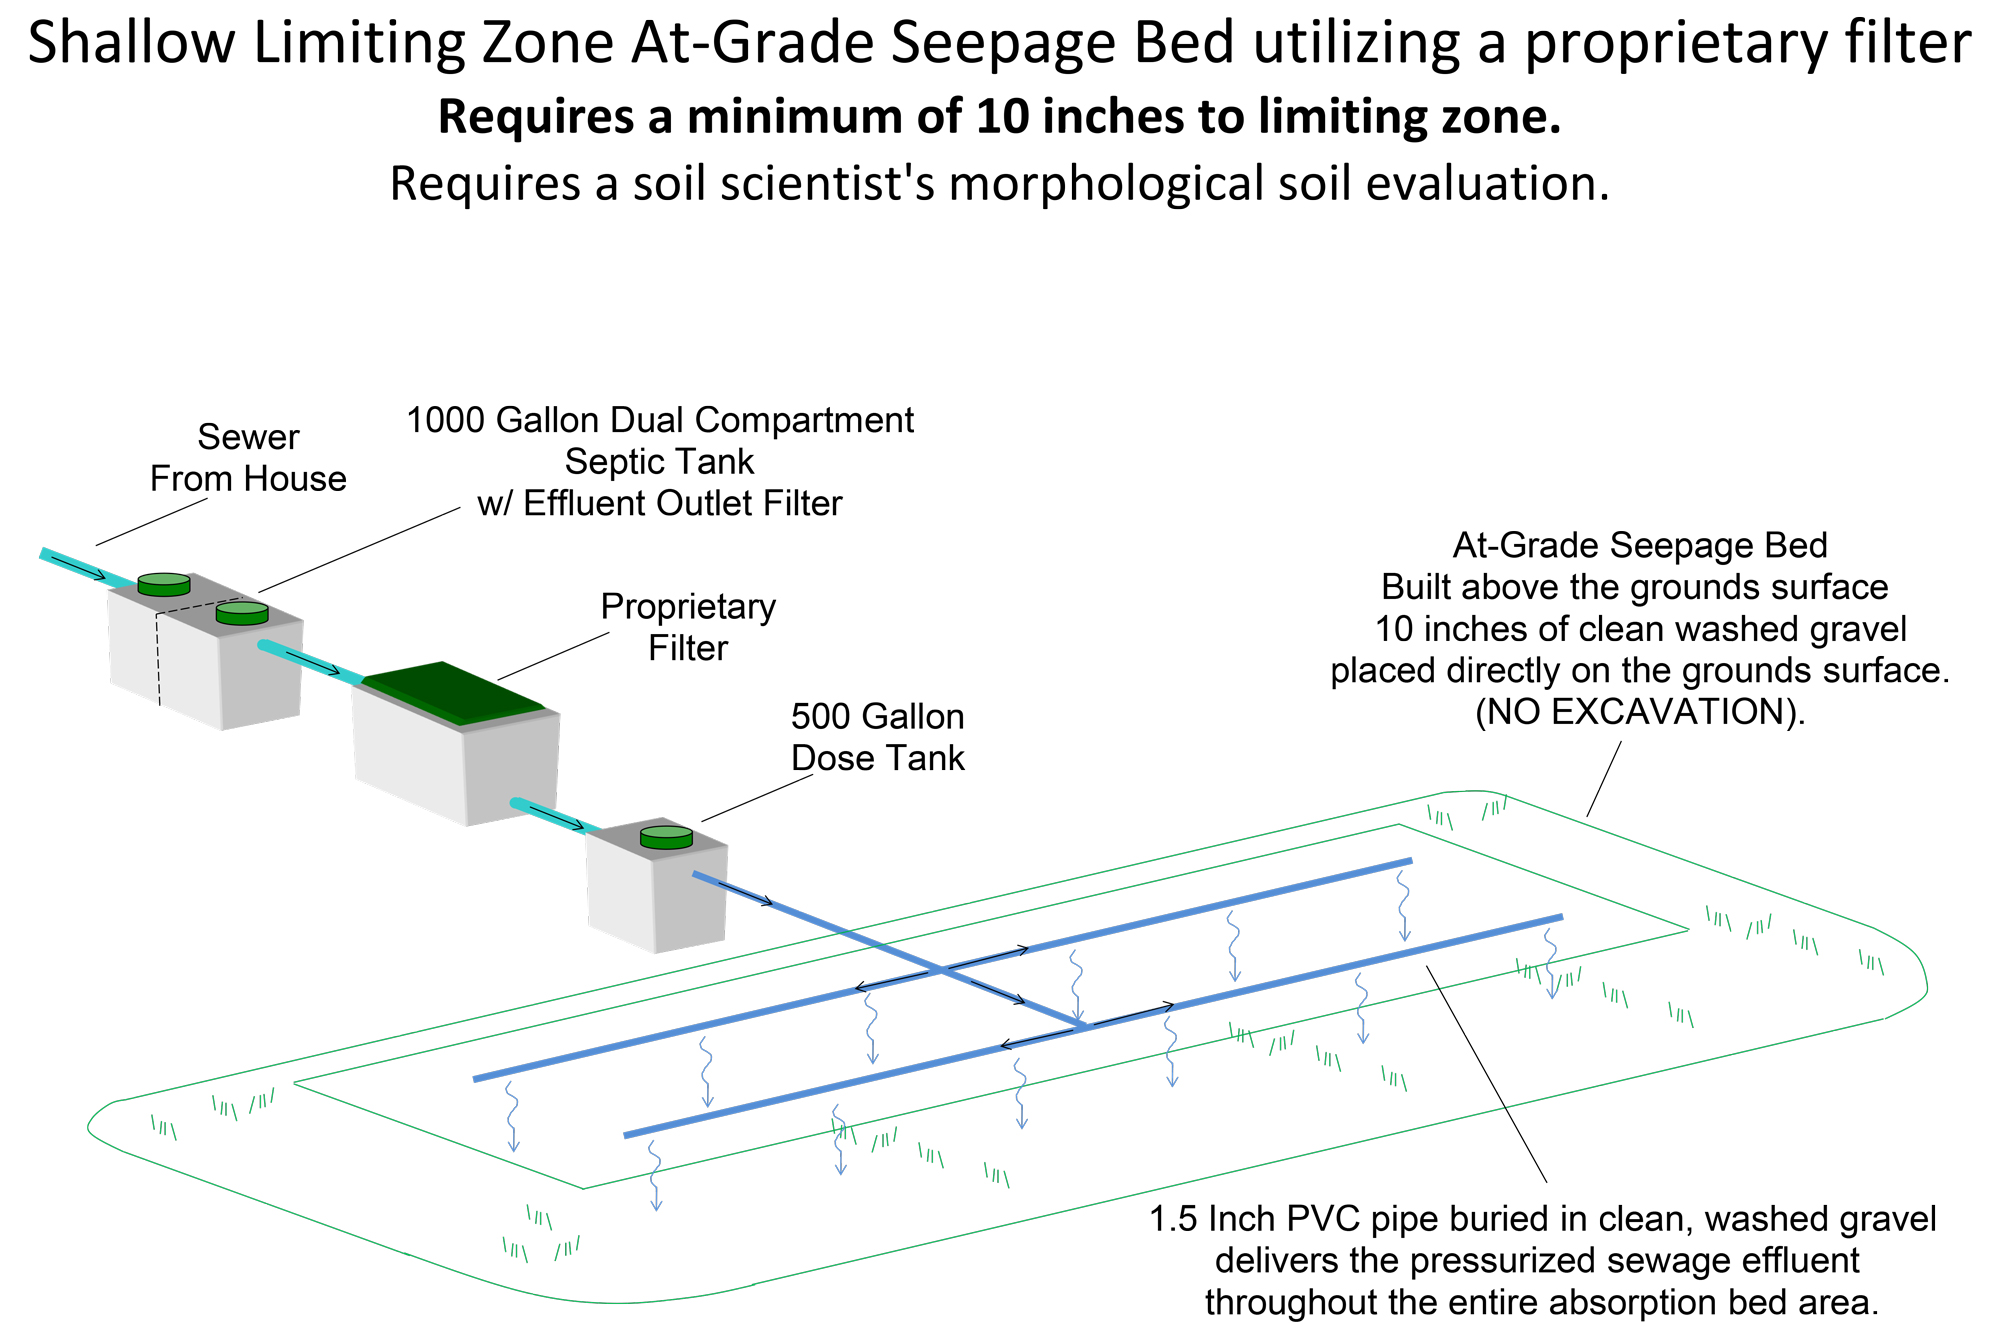 Shallow Limiting Zone At Grade Seepage Bed utilizing a proprietary filter shallow limiting zone at grade seepage bed utilizing a proprietary